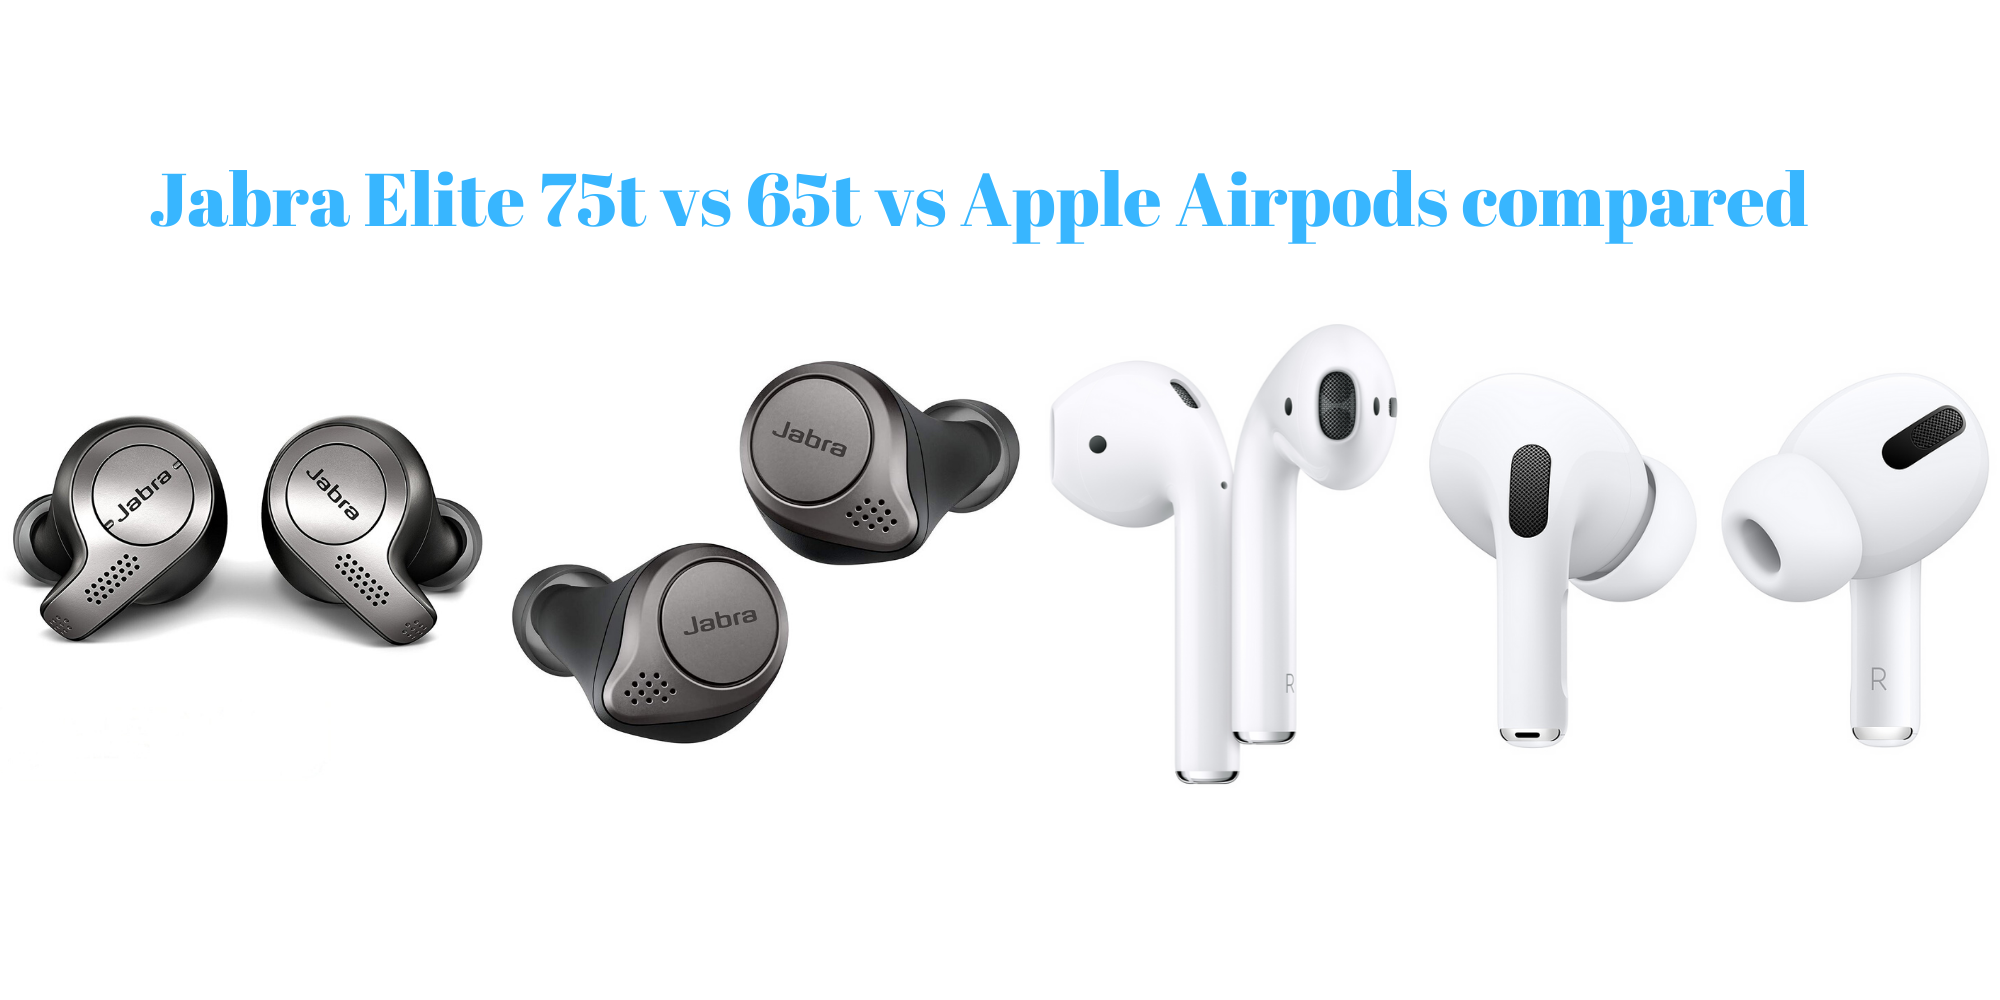 Jabra Elite 75t Vs 65t Vs Apple Airpods Compared Which Is The Best Buy This Black Friday Just Android